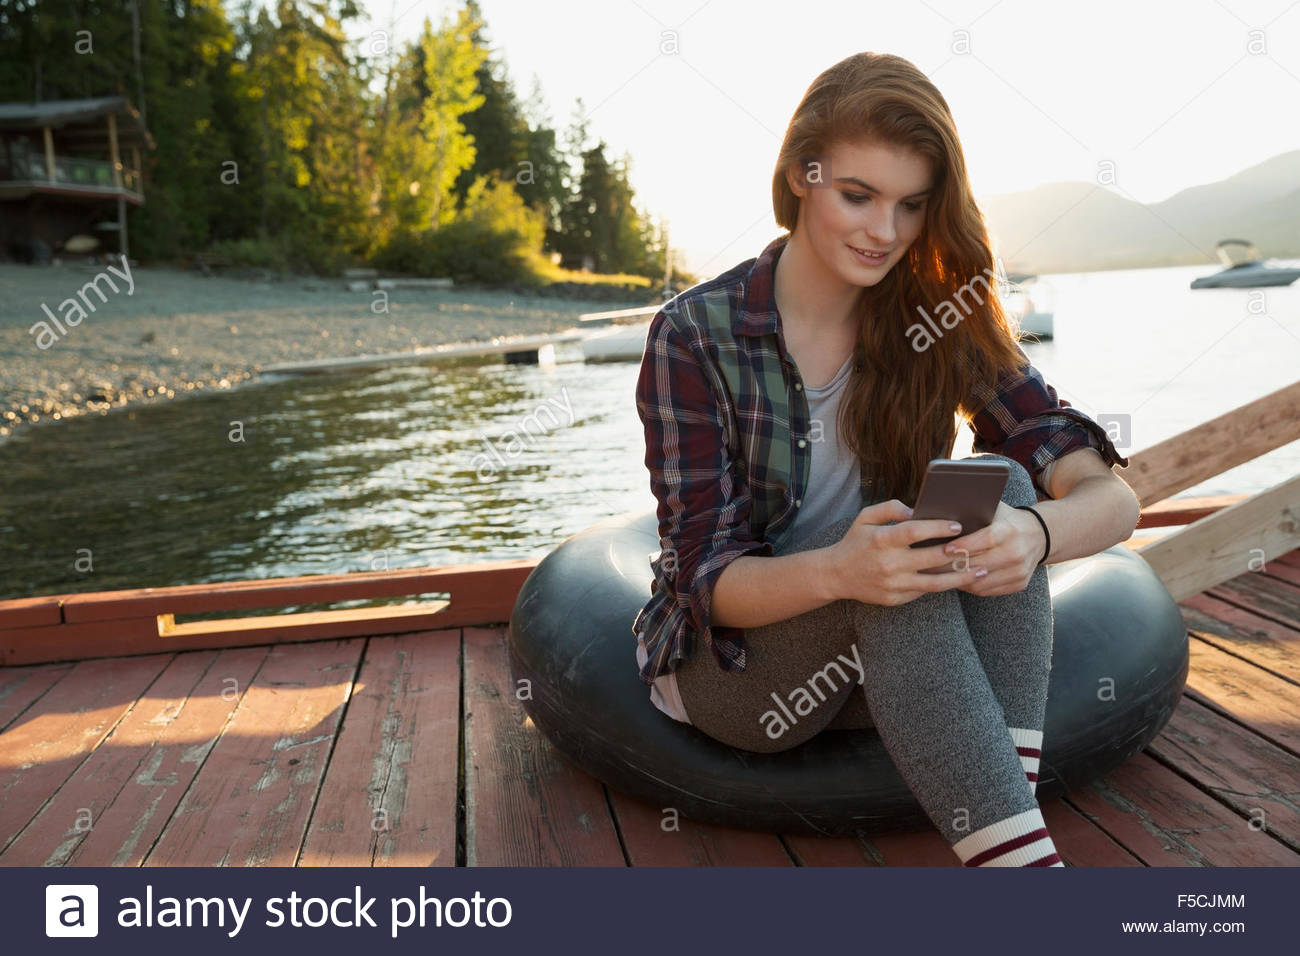 Young woman texting on lake dock Stock Photo